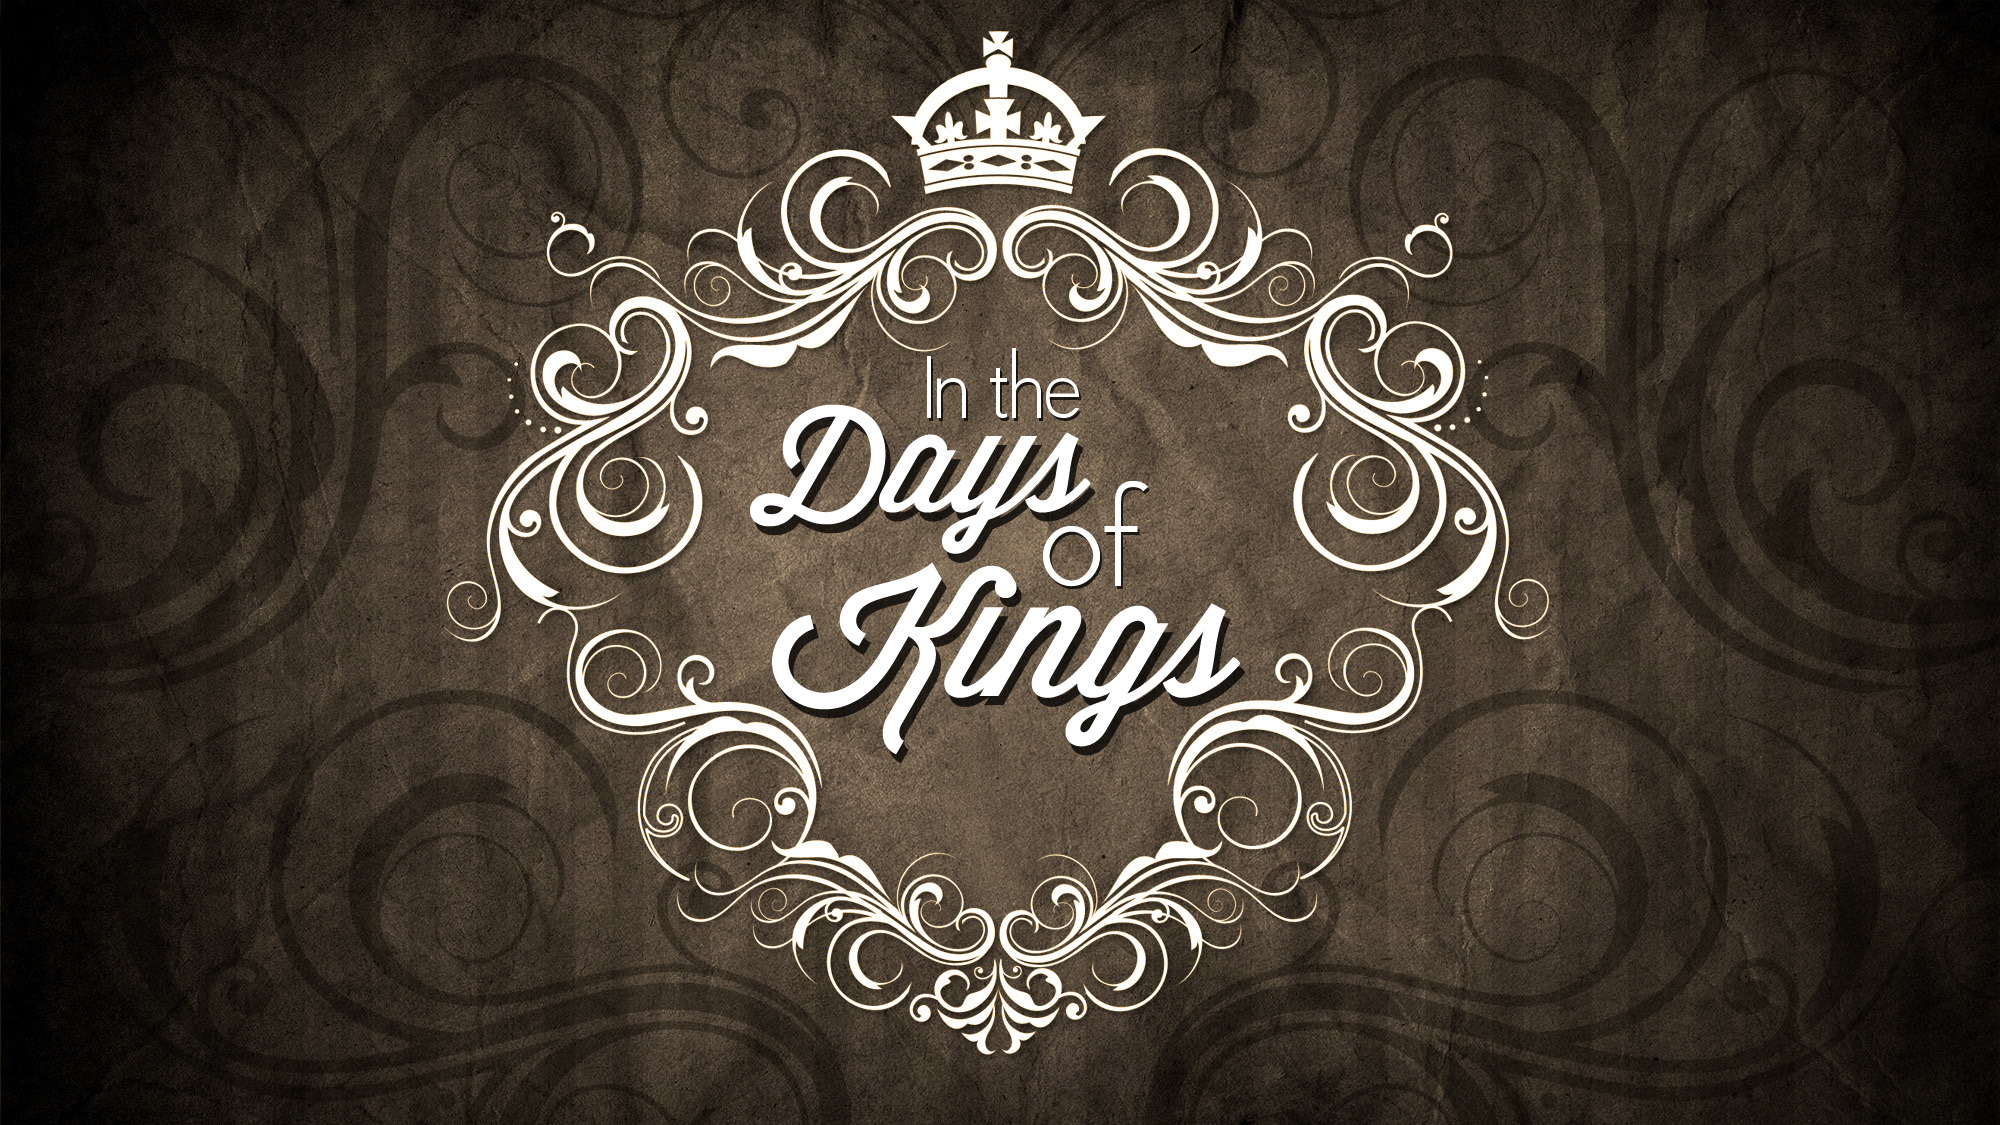 Days of Kings